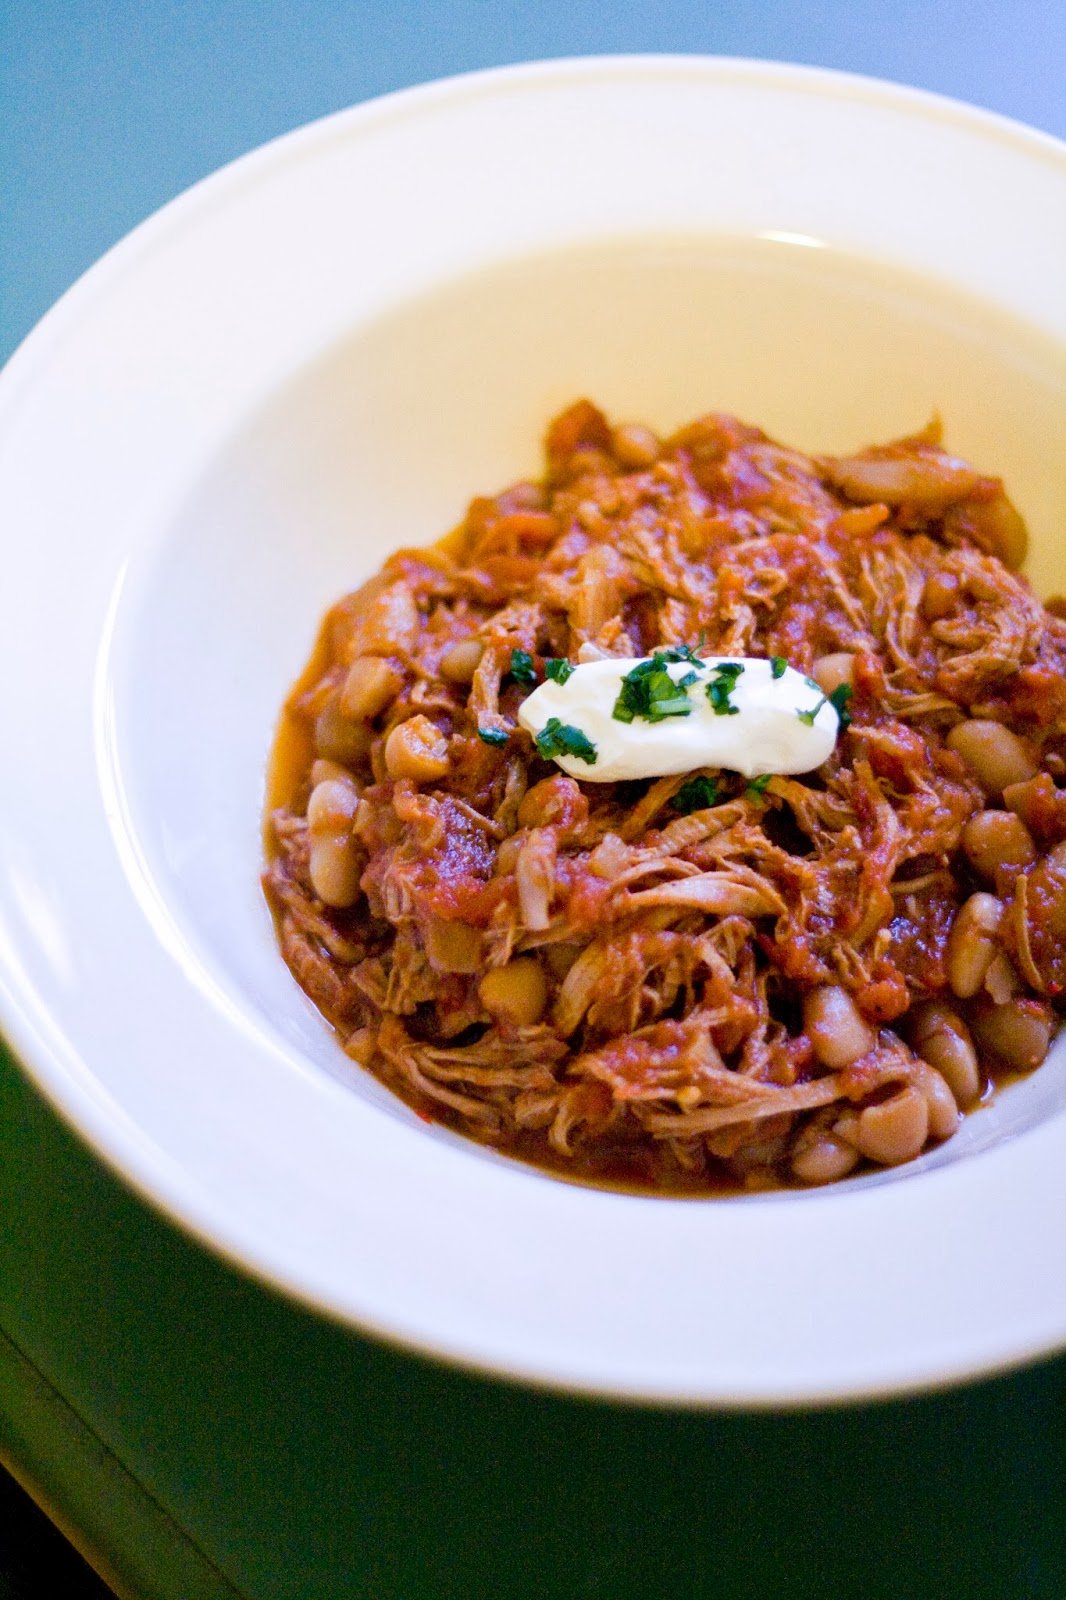 ... Street Eats: Chef Jeremy: Spicy Slow Cooker Chili with Pork and Coffee